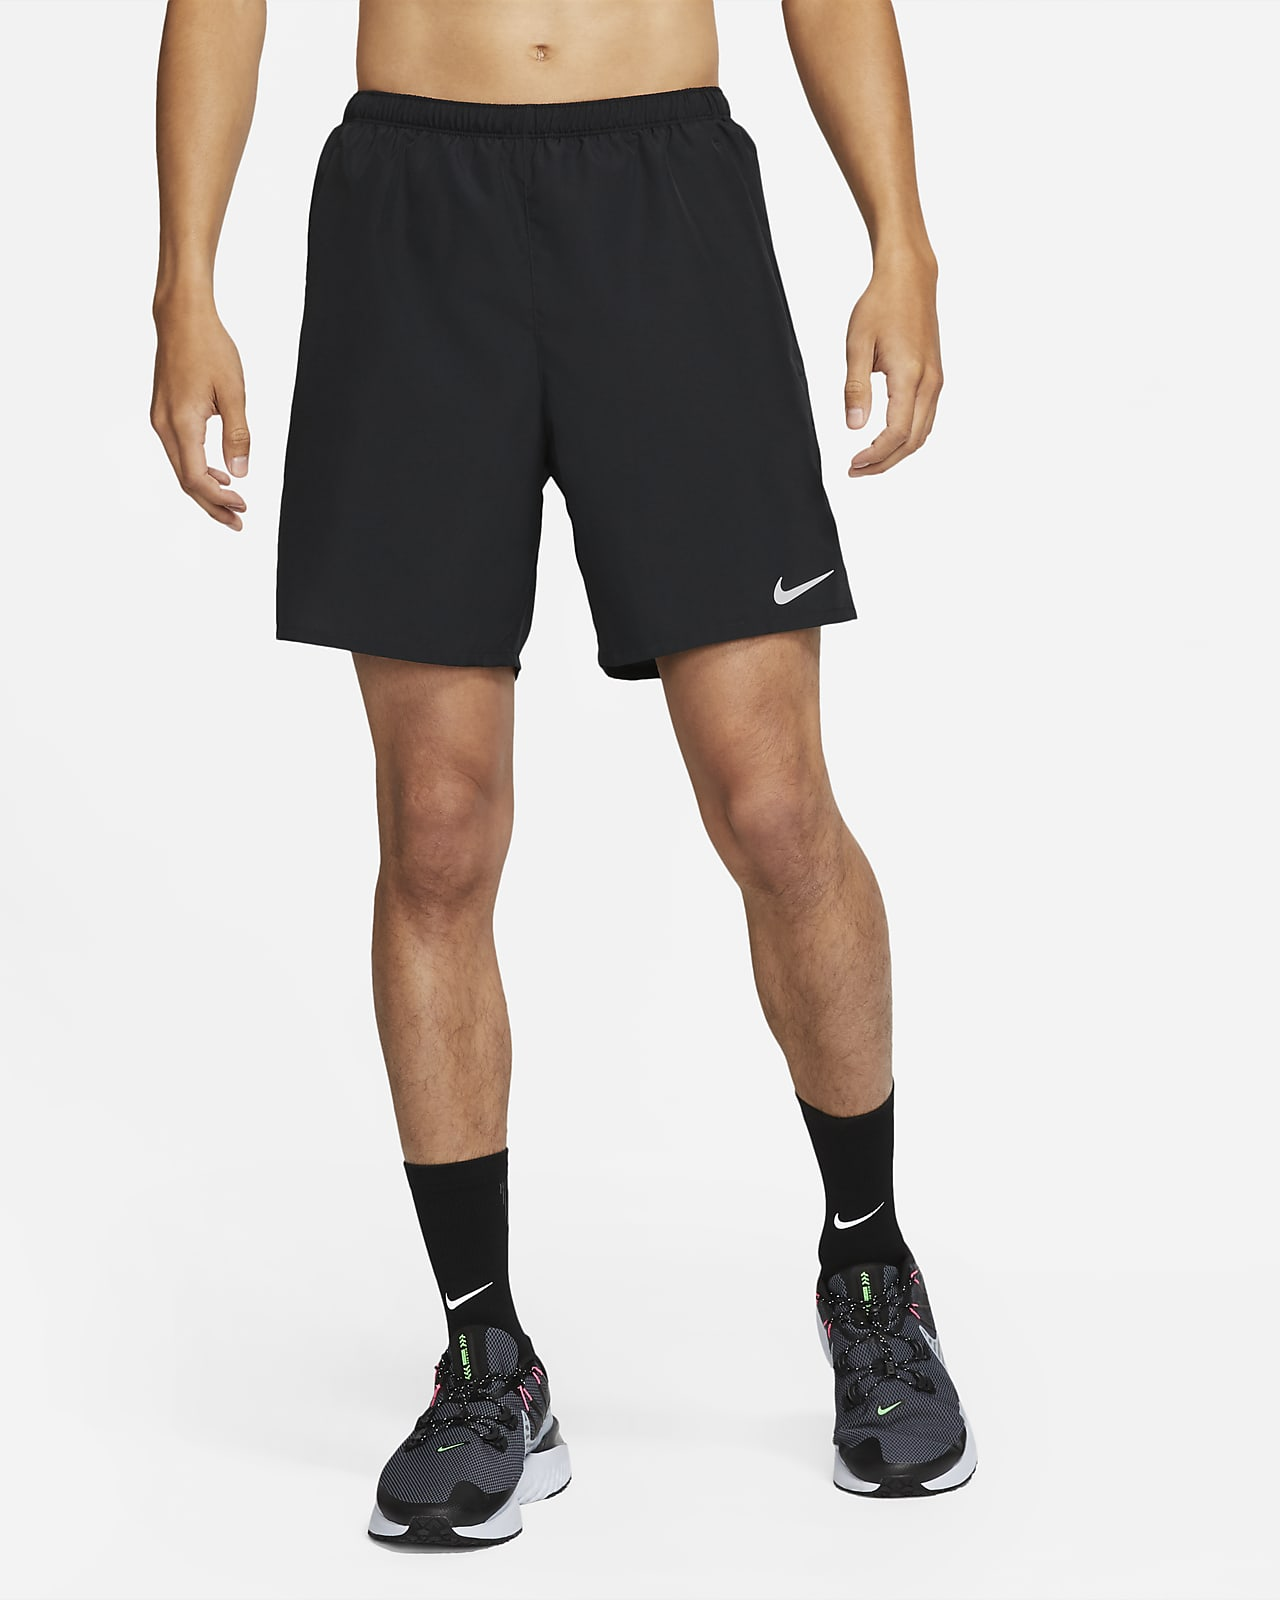 Nike Challenger Men's 2-in-1 Running Shorts